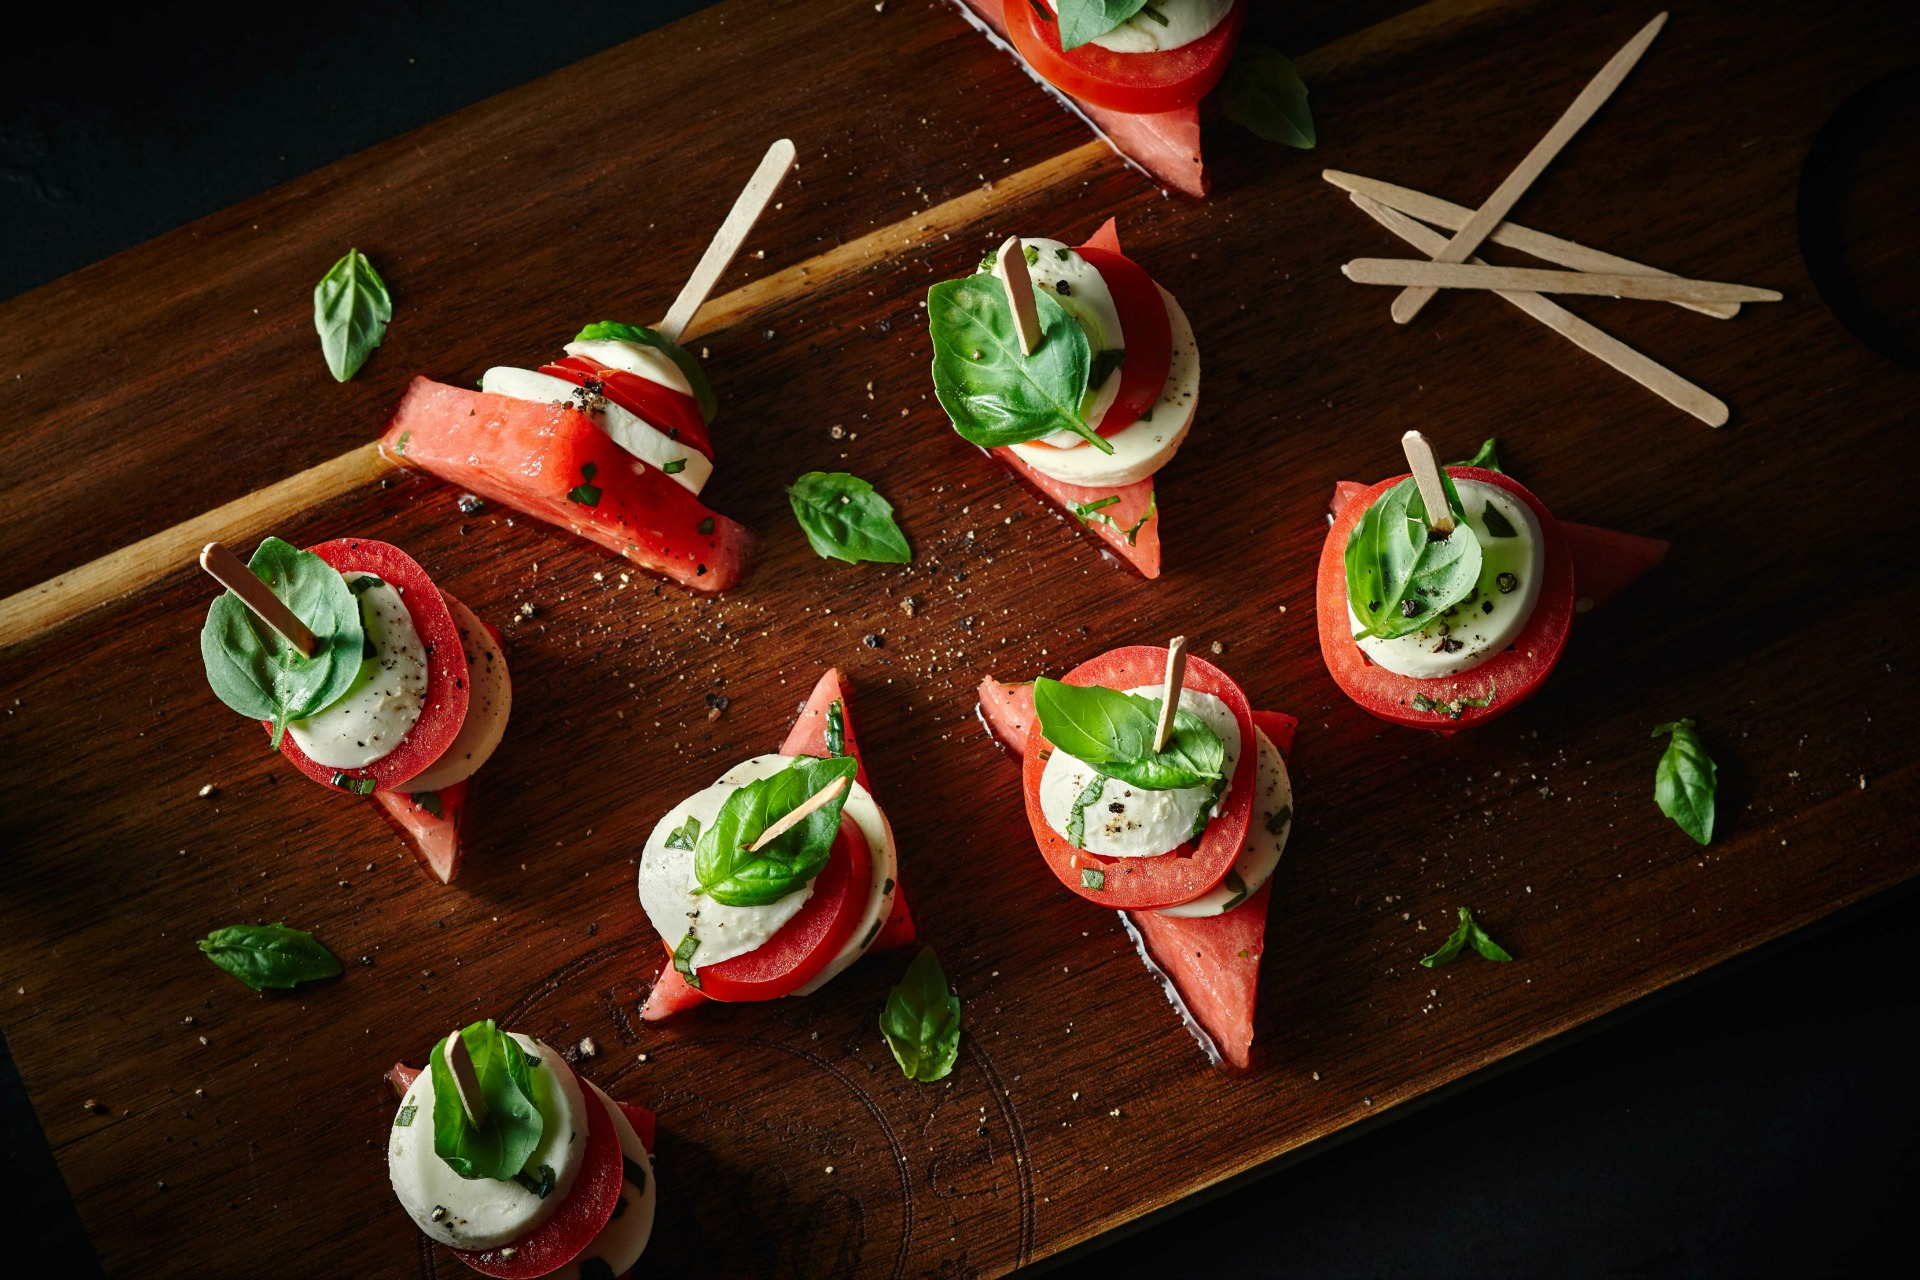 Stacks of sliced tomato, watermelon, bocconcini cheese and basil on wooden board